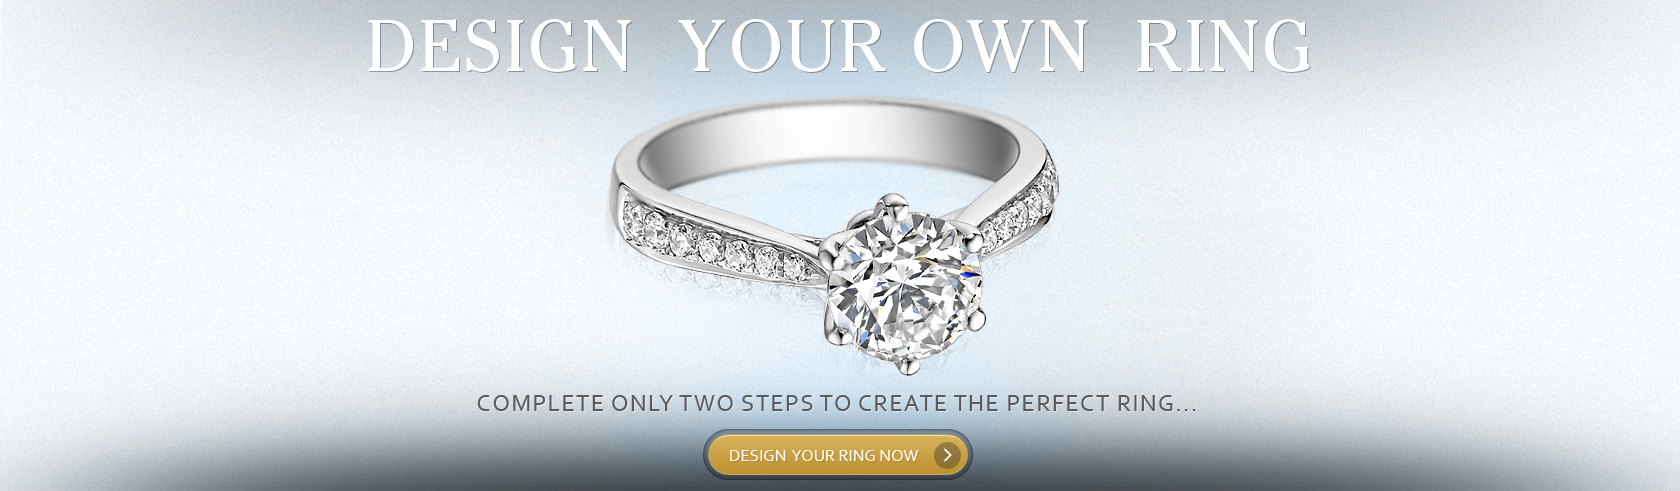 idea band own unique of rings wedding your ring custom beautiful jewellery size design